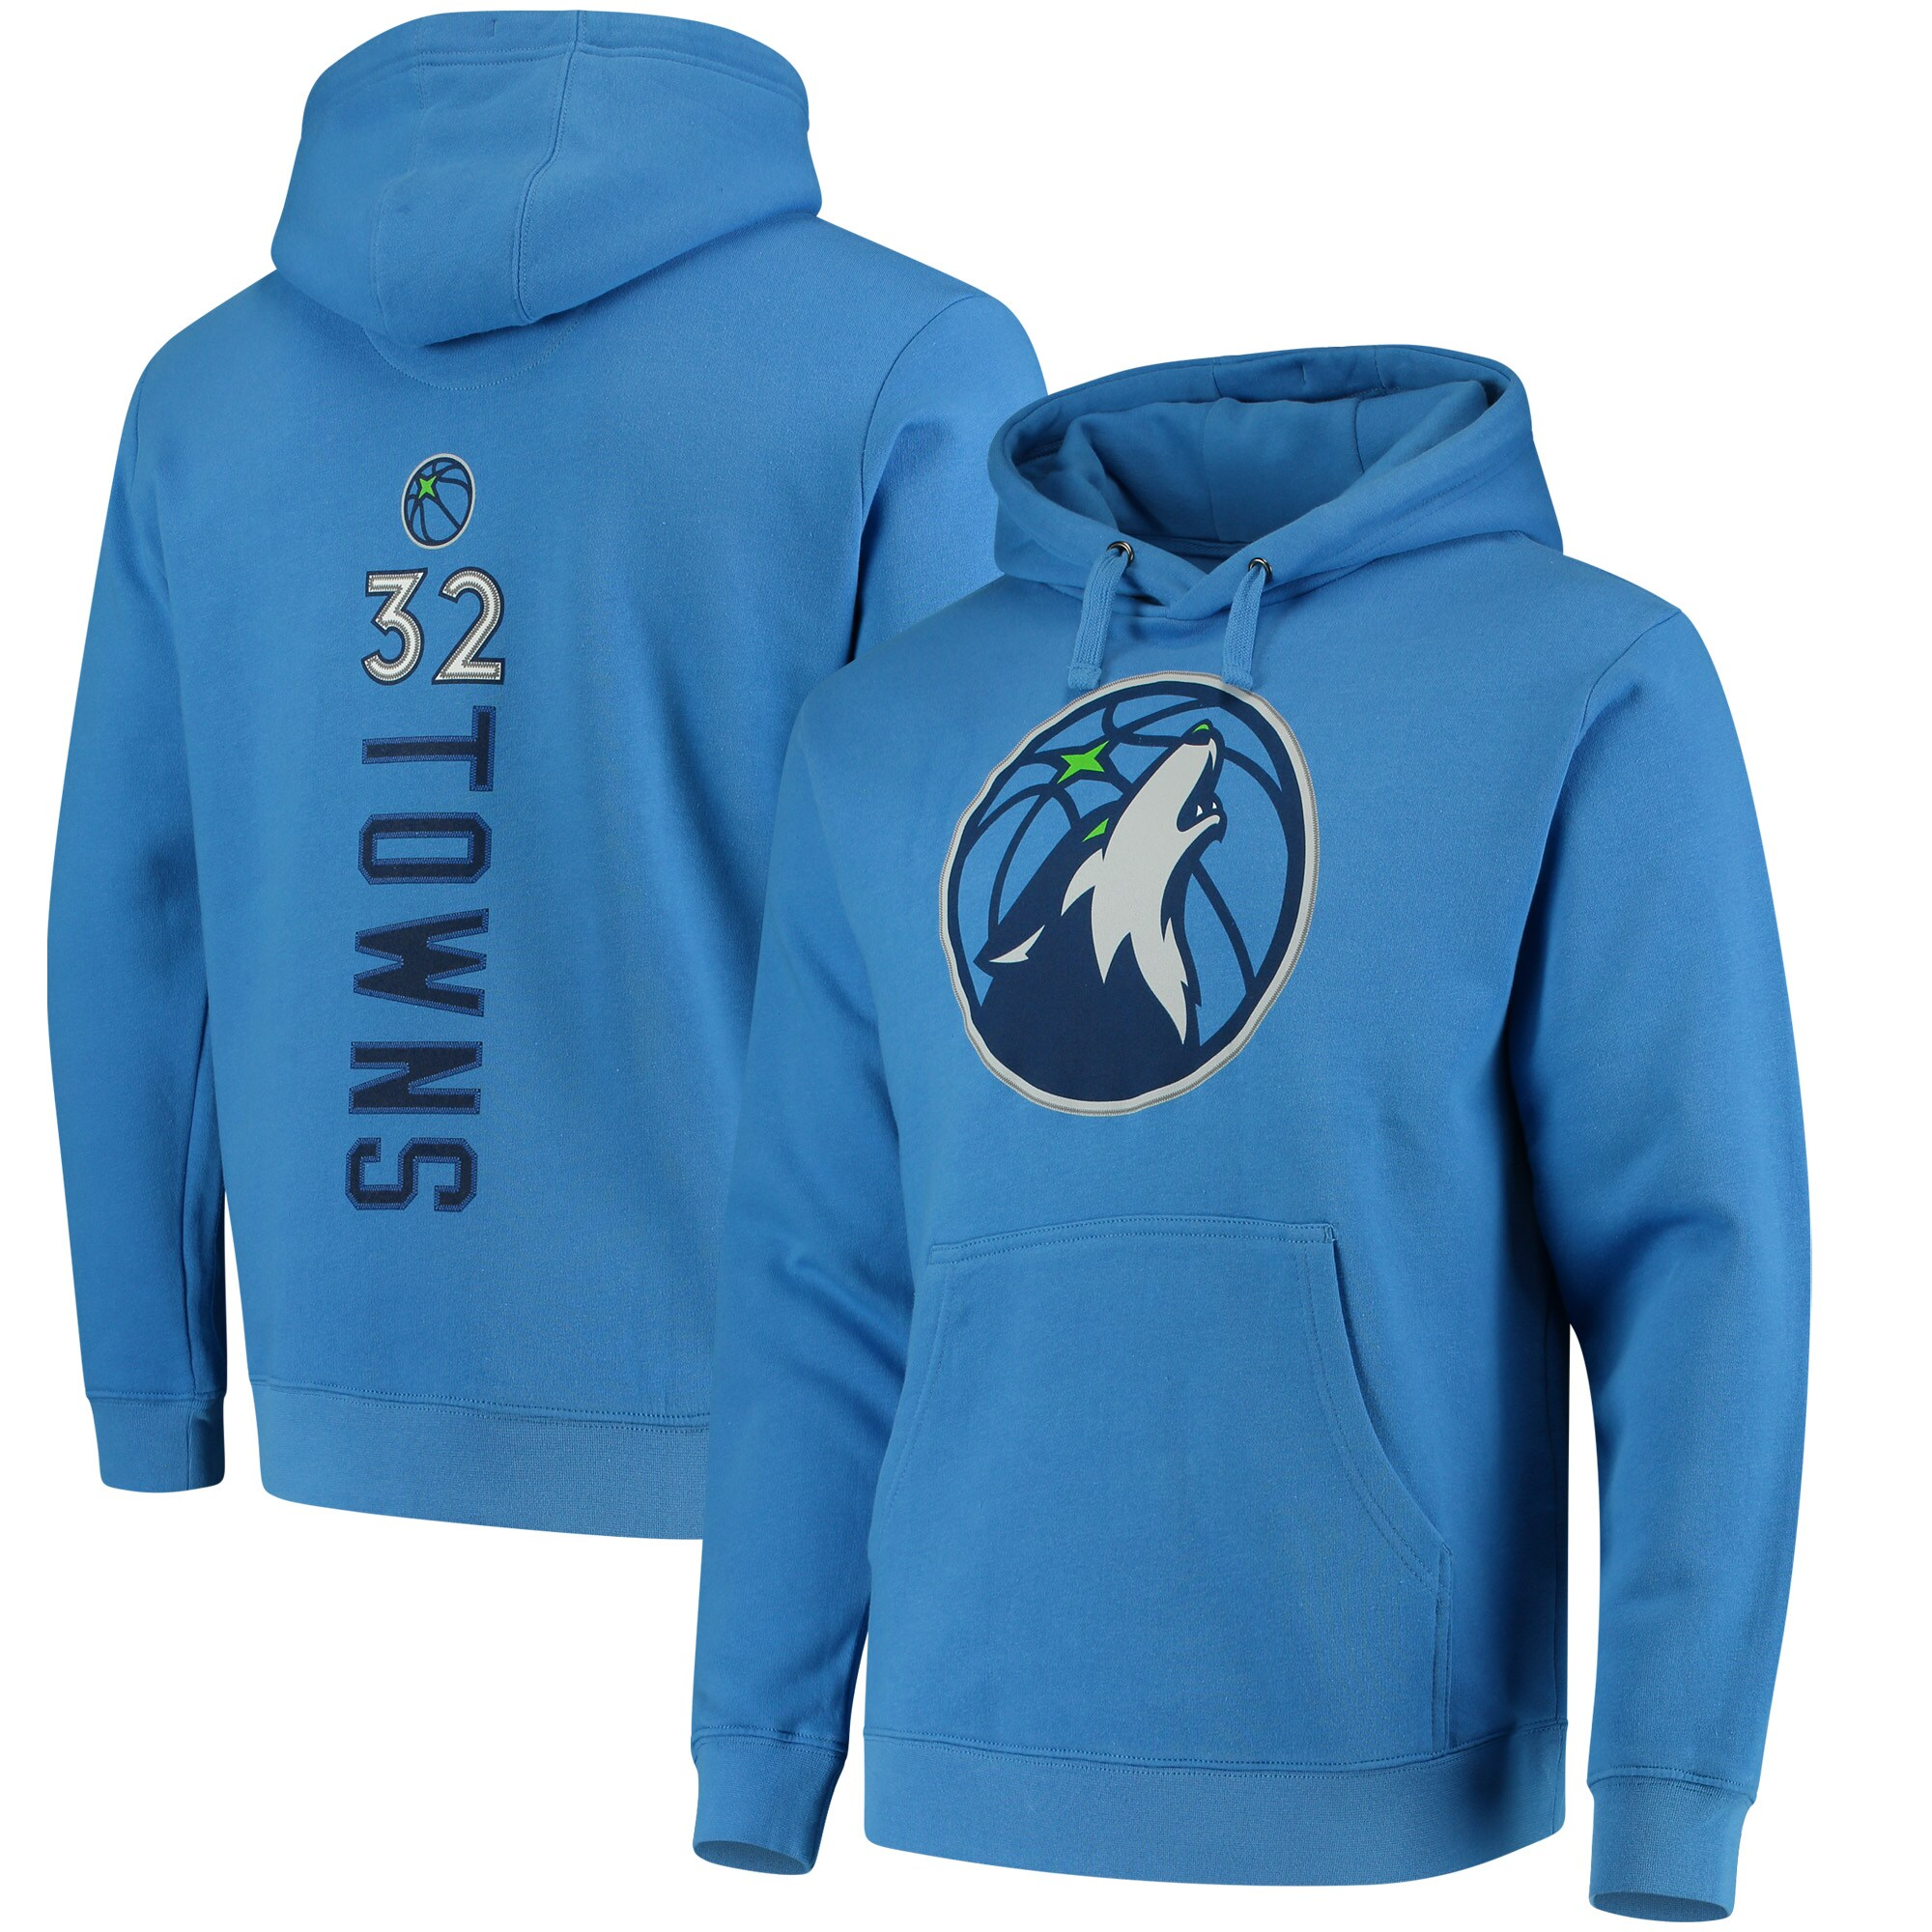 Karl-Anthony Towns Minnesota Timberwolves Fanatics Branded Backer Name & Number Pullover Hoodie - Blue